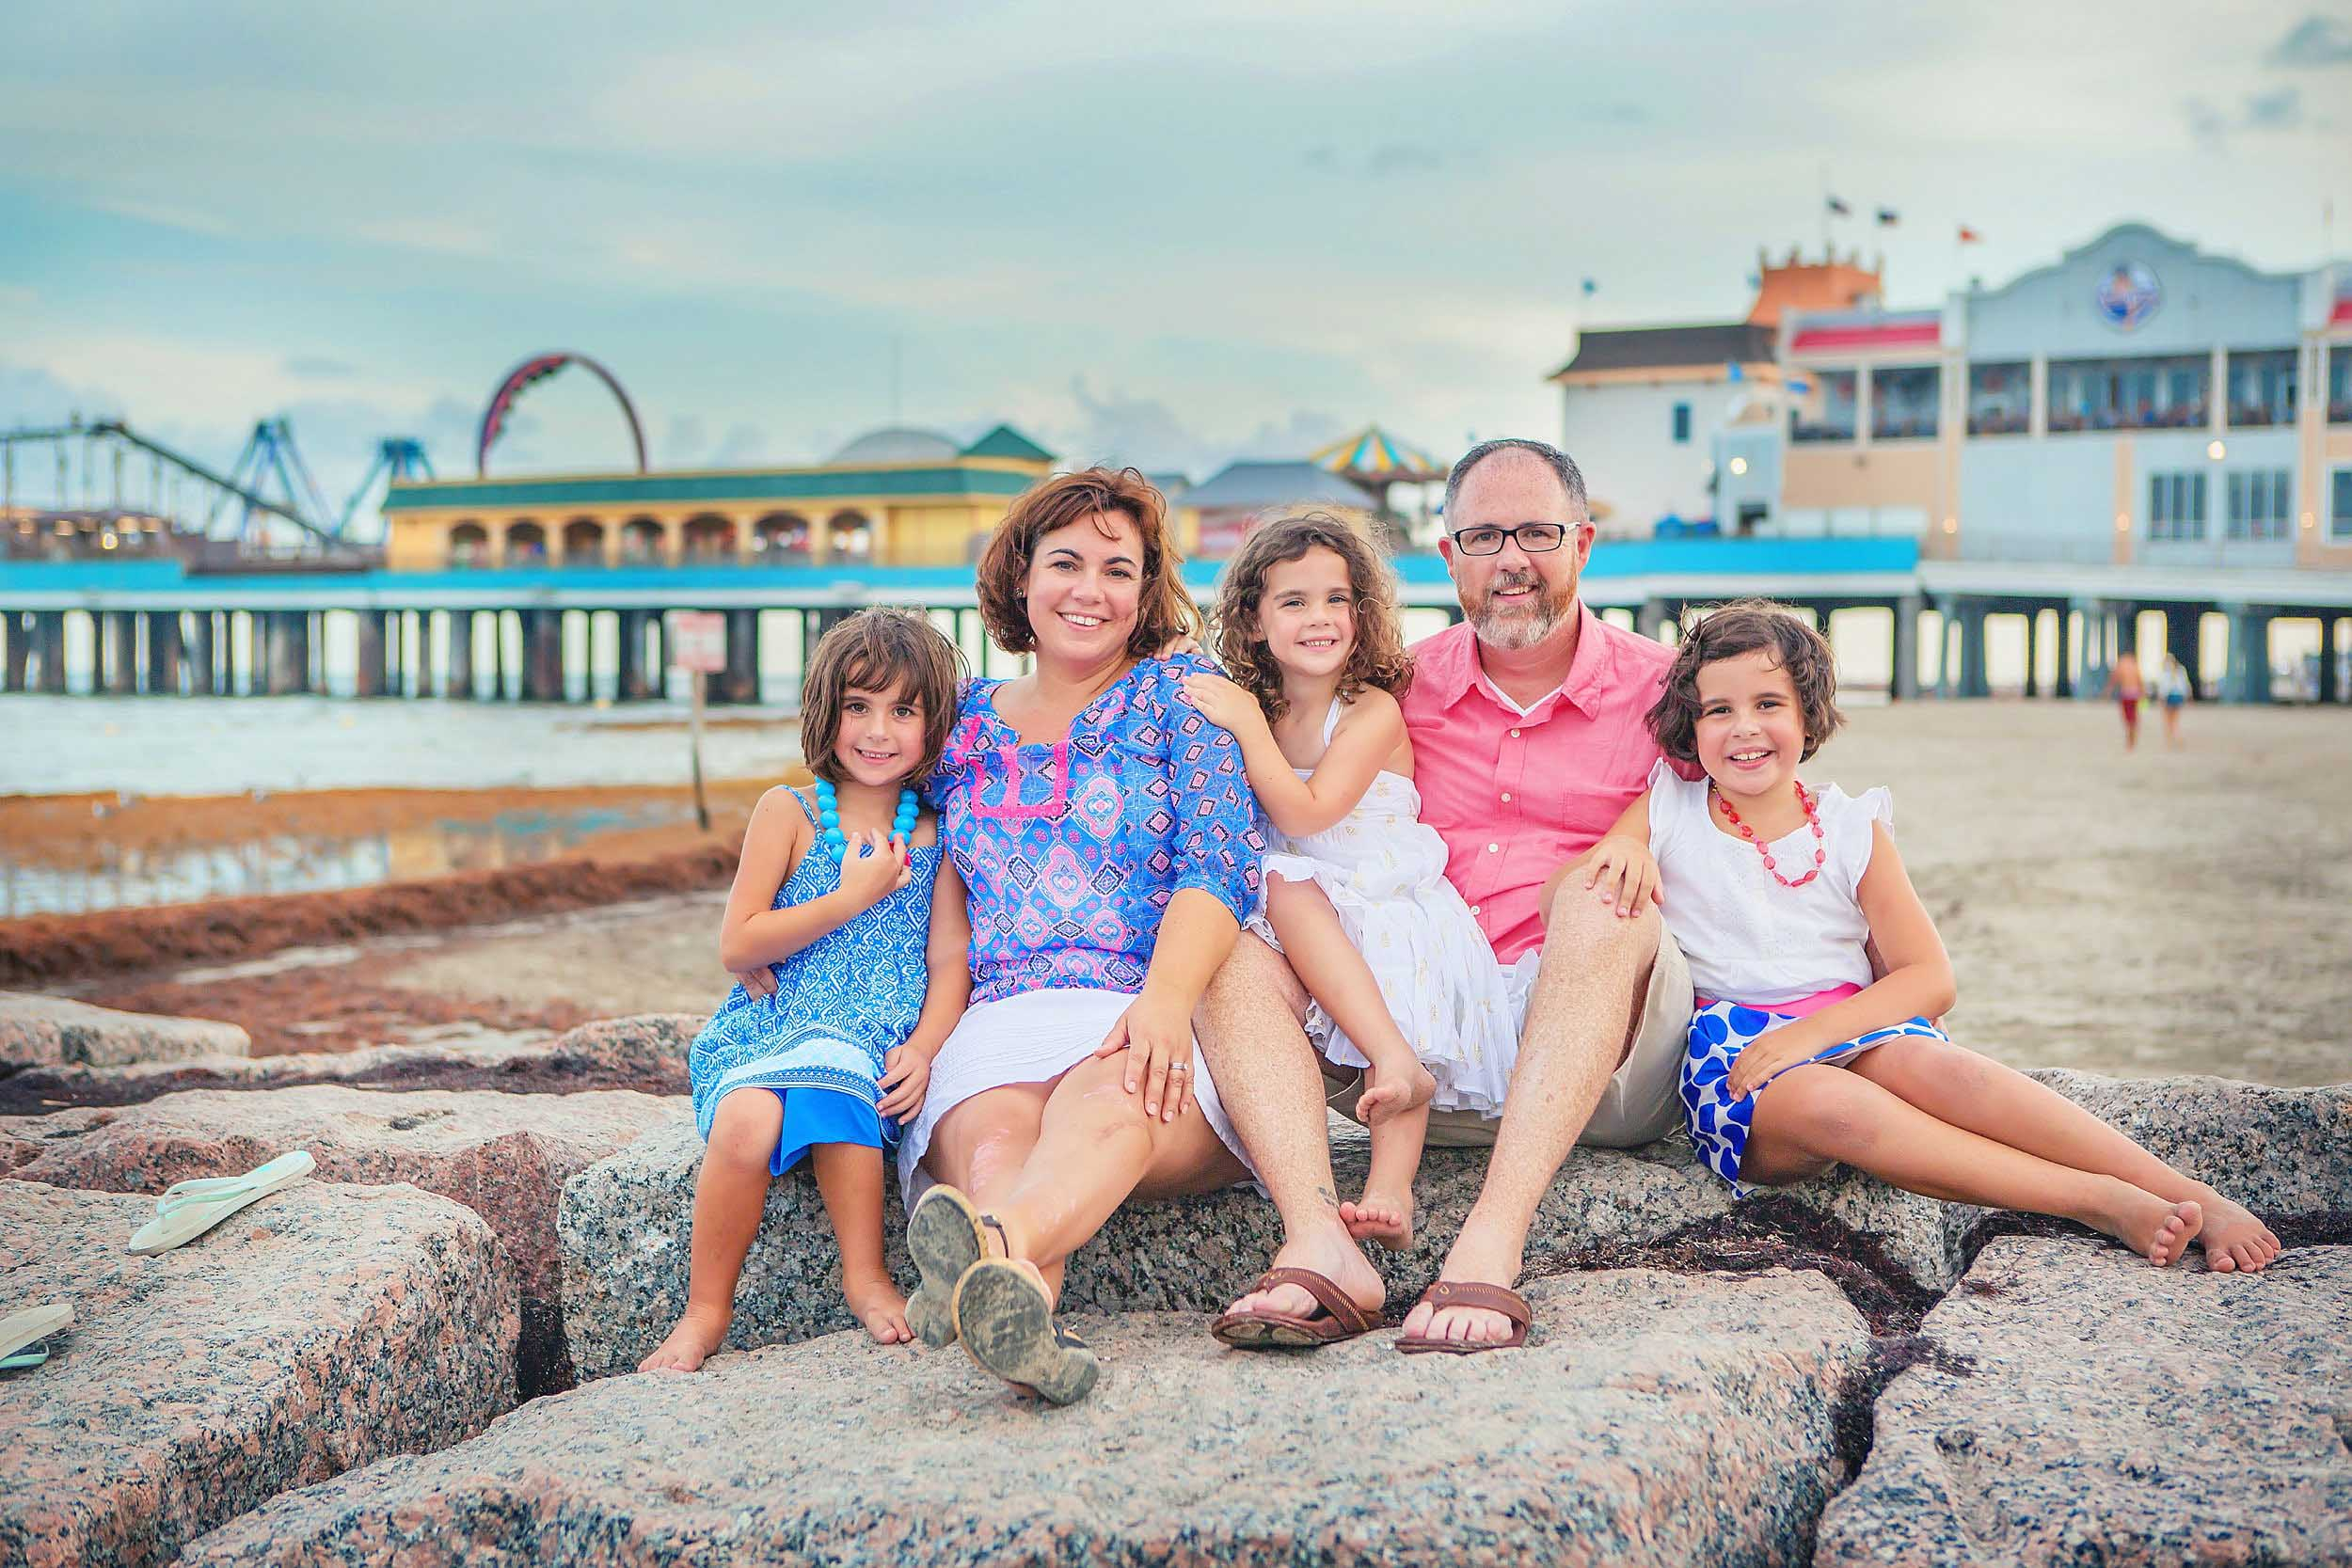 Beach portrait of family in Galveston with pleasure pier in the background.